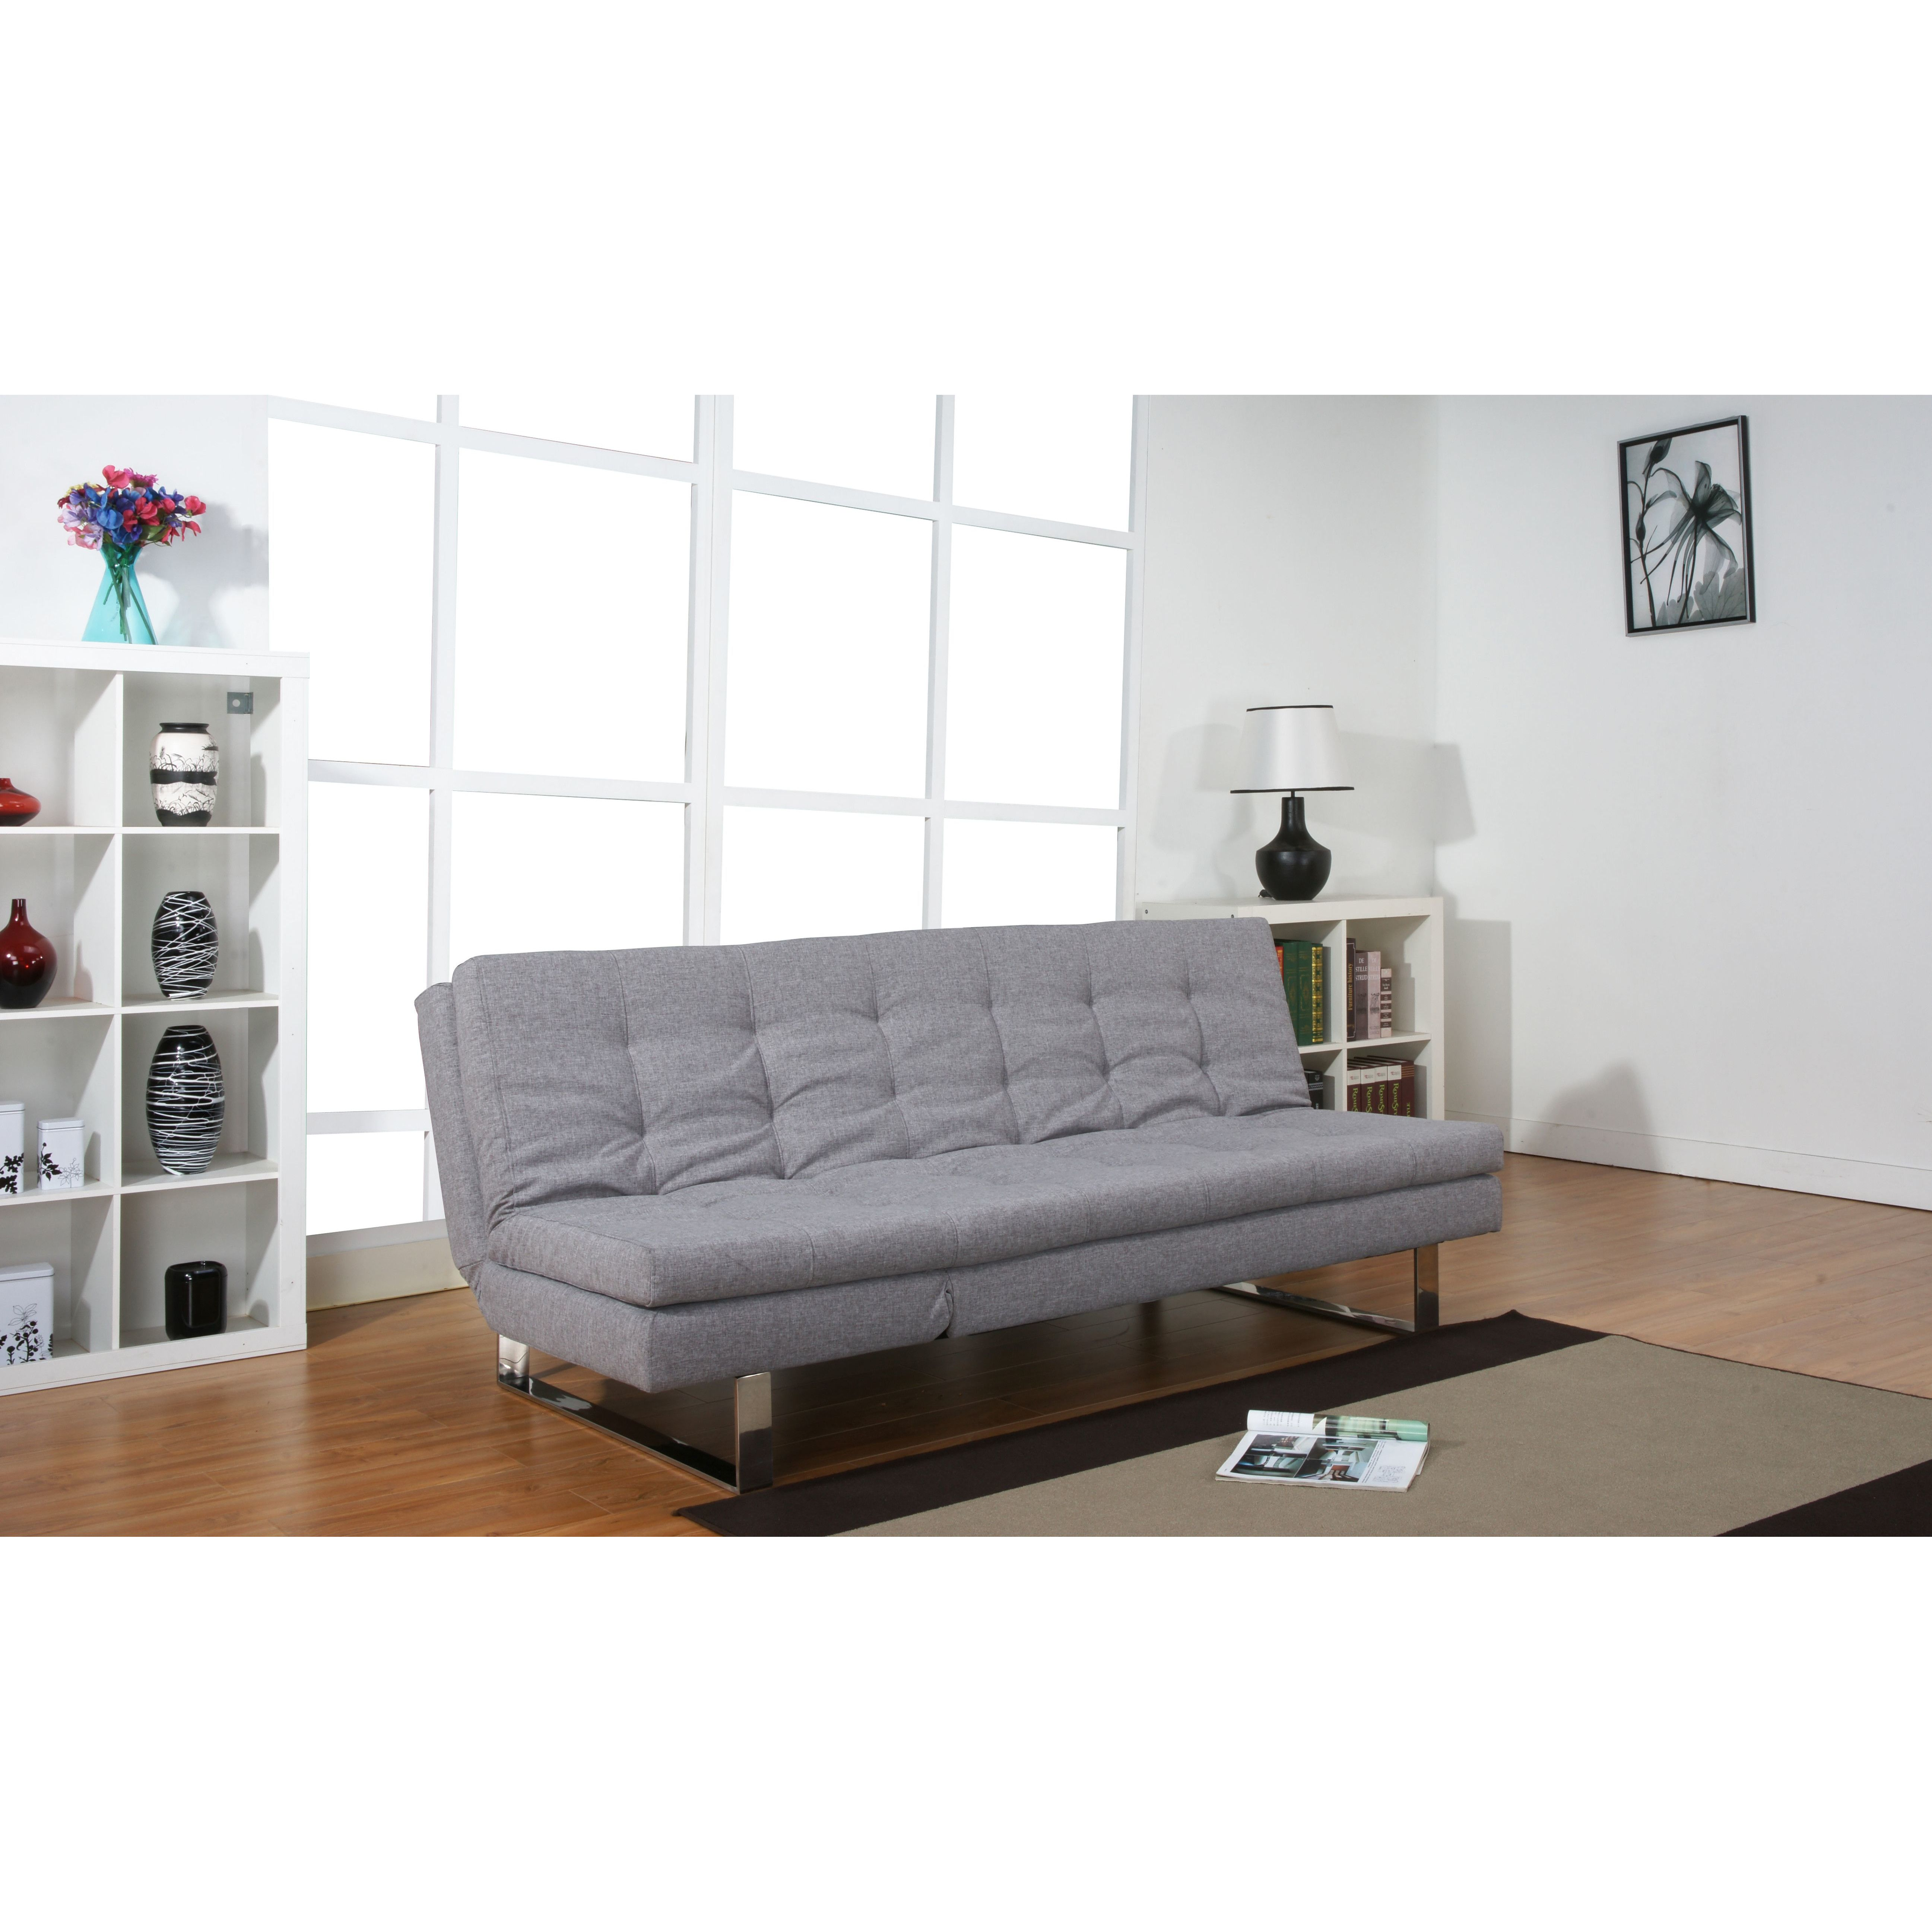 Leader Lifestyle Milano 3 Seater Clic Clac Sofa Bed Reviews Wayfair Co